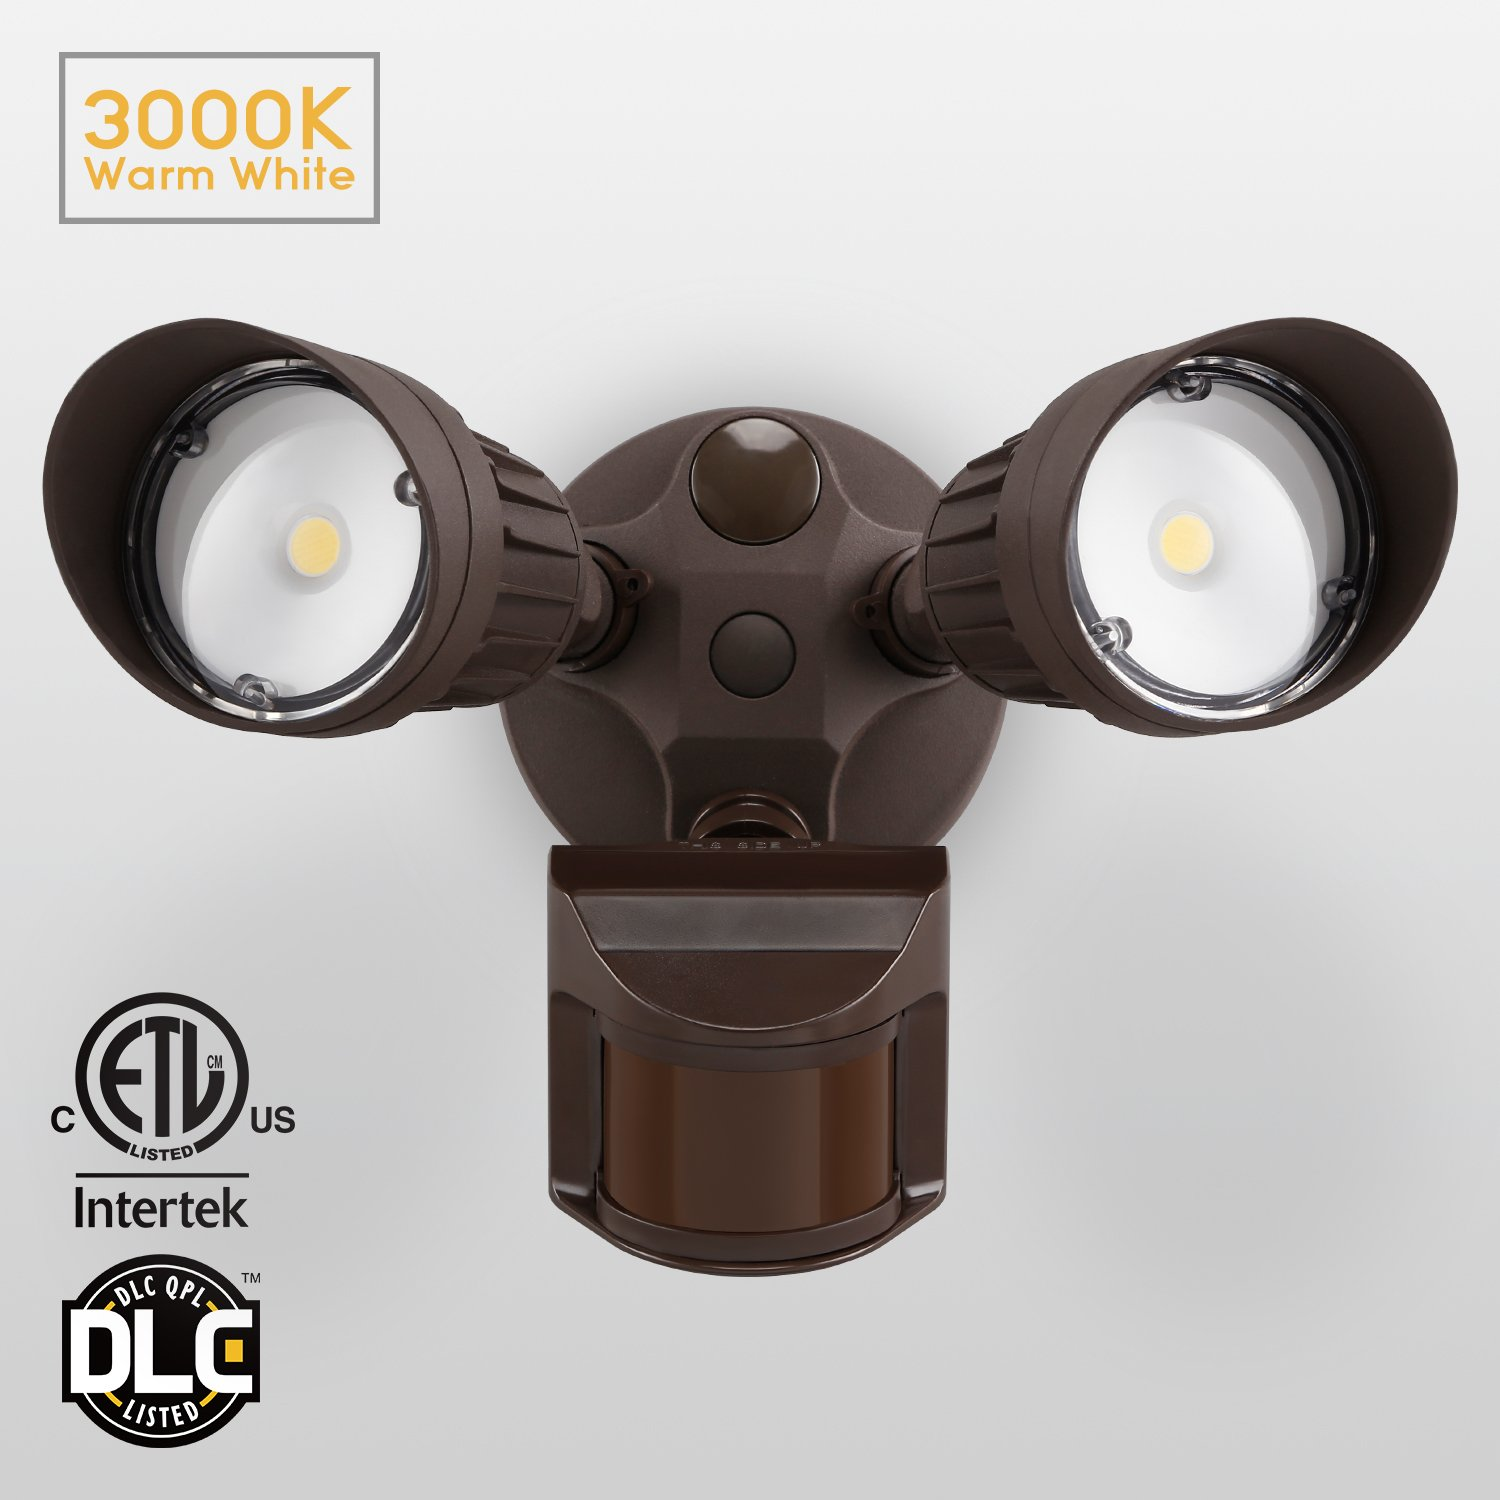 20W Dual-Head Motion-Activated LED Outdoor Security Light, Photocell Included, Newly Designed 3 Lighting Modes, 3000K Warm White, Waterproof, 120W Halogen Equiv. Illumination for Yard, Garage, Bronze